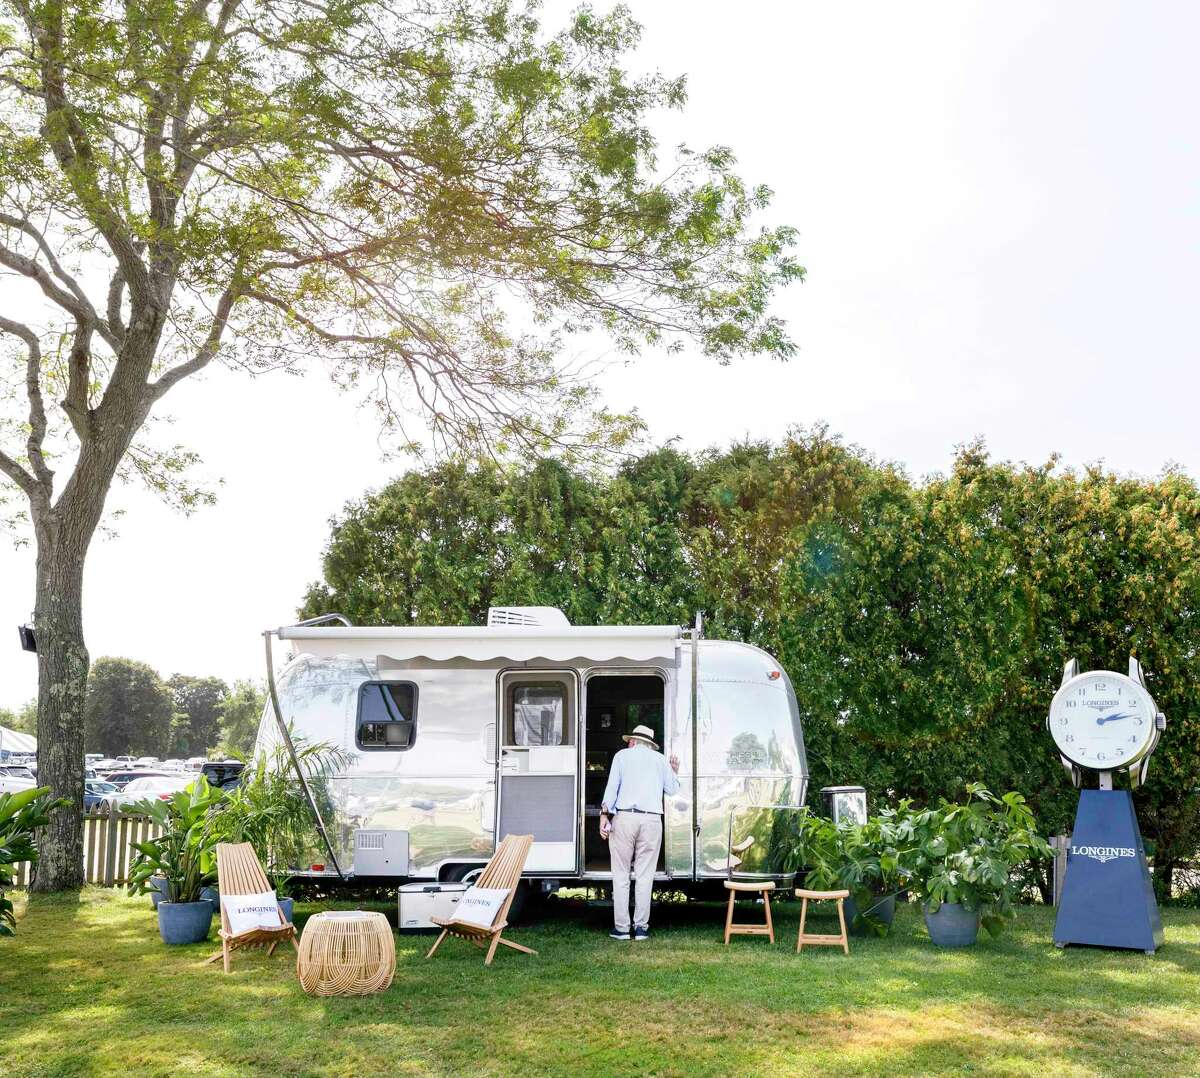 A vintage Airstream trailer is filled with Watches of Switzerland's display in the Hamptons in New York.